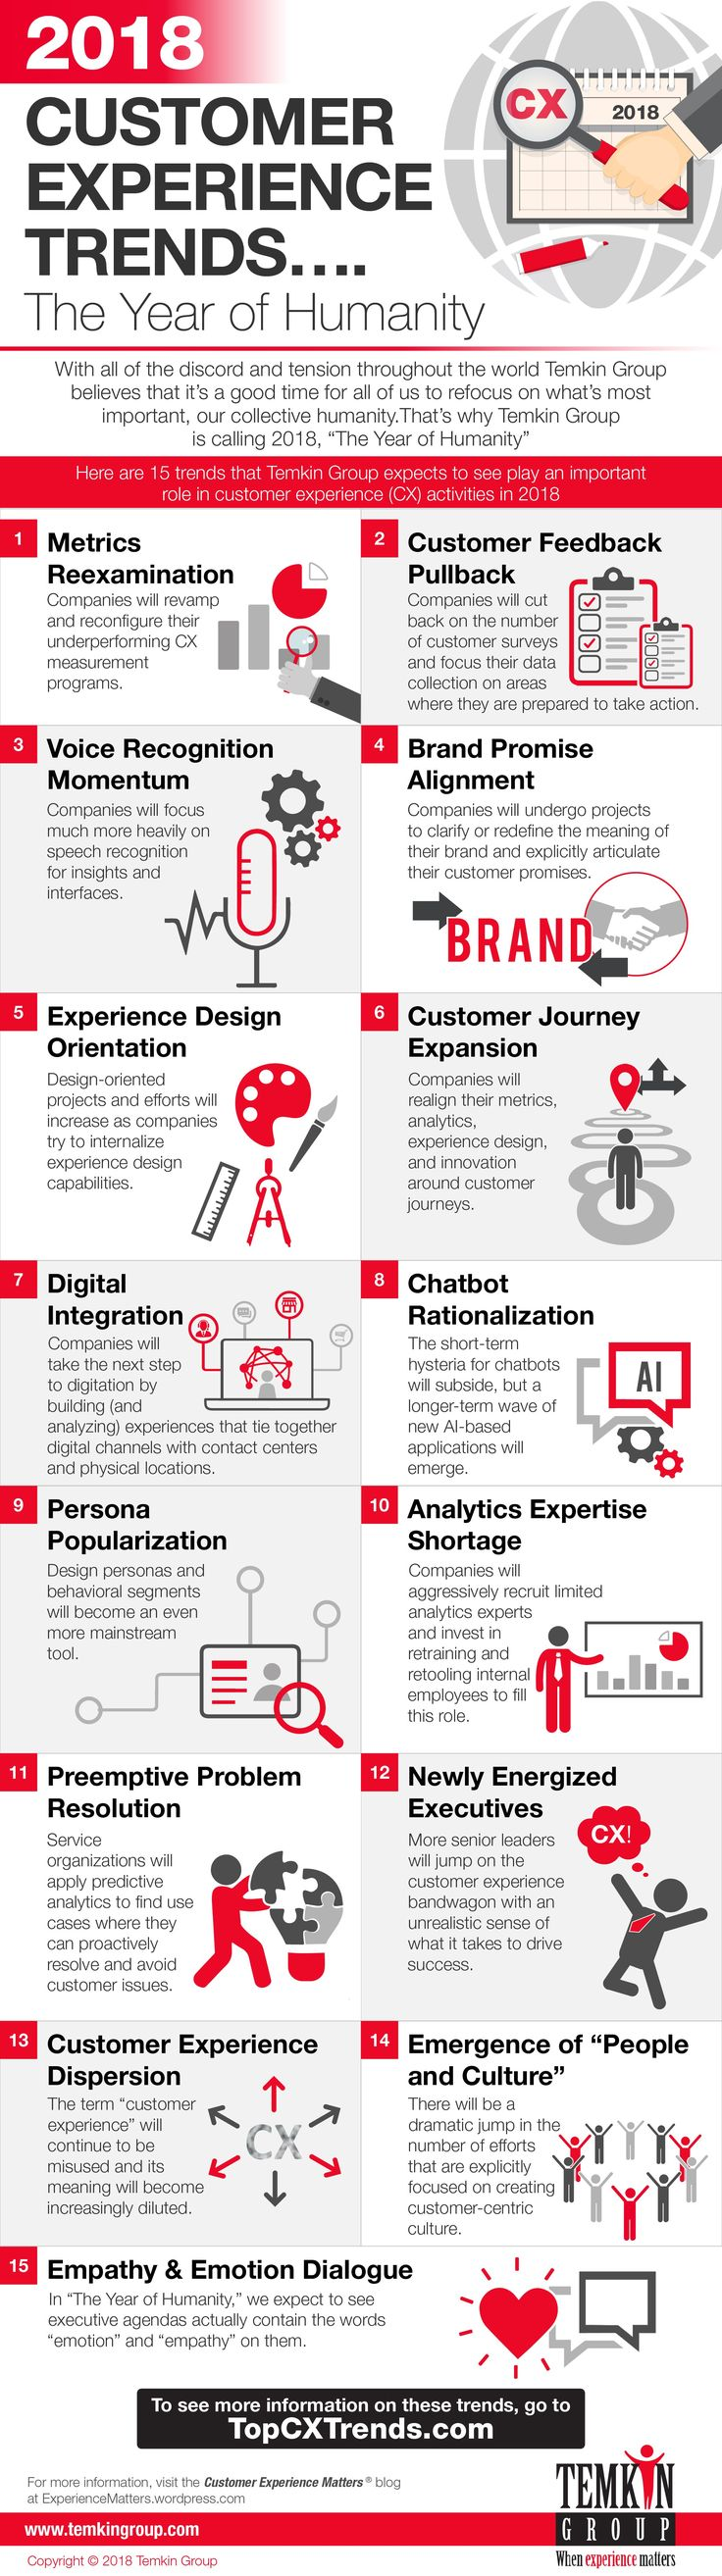 15 Customer Experience (CX) Trends For 2018 From Temkin Group